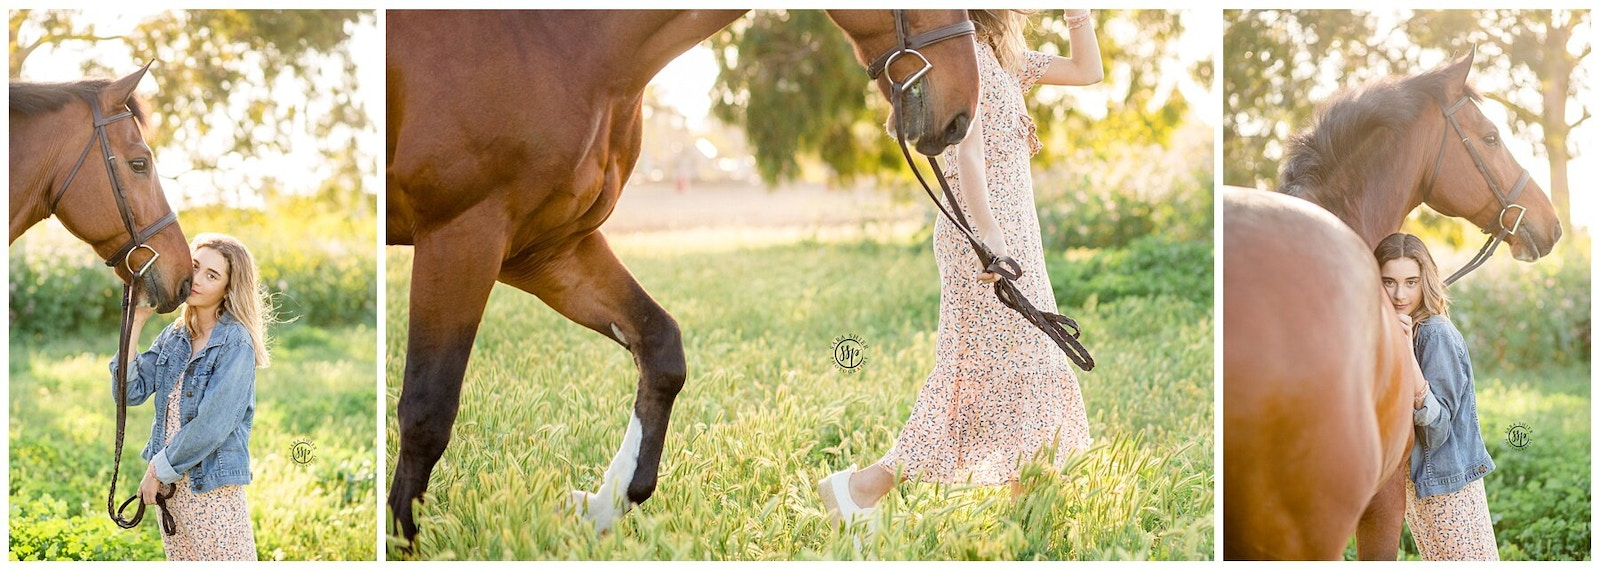 Sara Shier Photography: What YOU Should Look For When Hiring An Equine Photographer